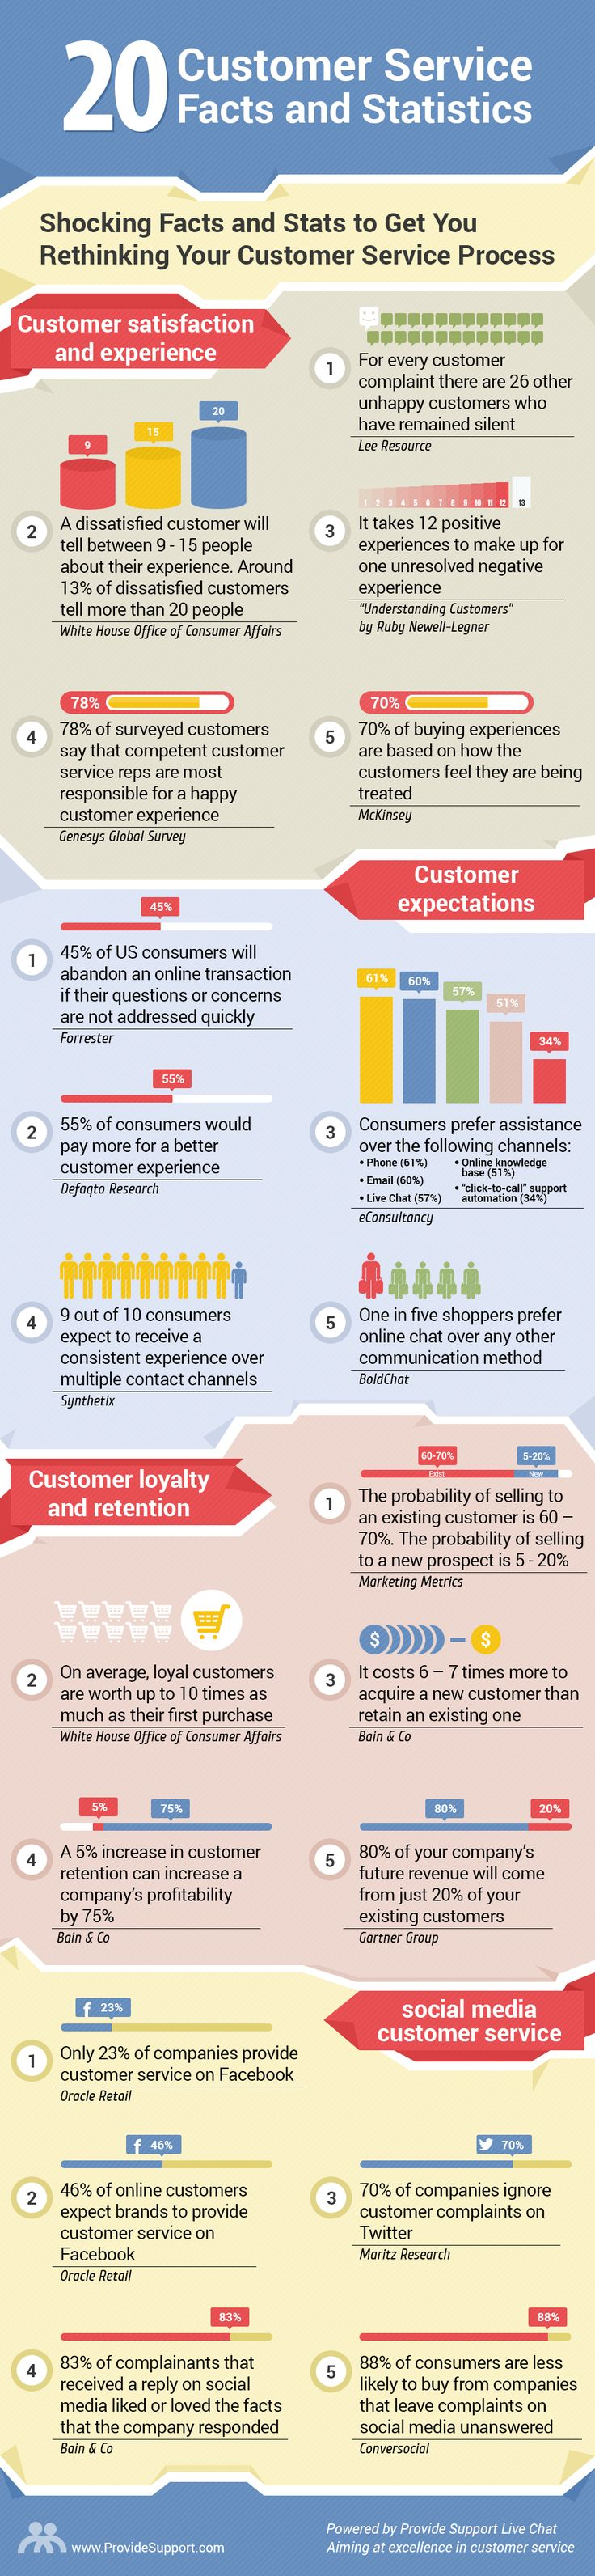 20 Shocking Customer Service Facts and Stats (Infographic): http://www.providesupport.com/blog/20-shocking-customer-service-facts-and-statistics/ #customerservice #custserv